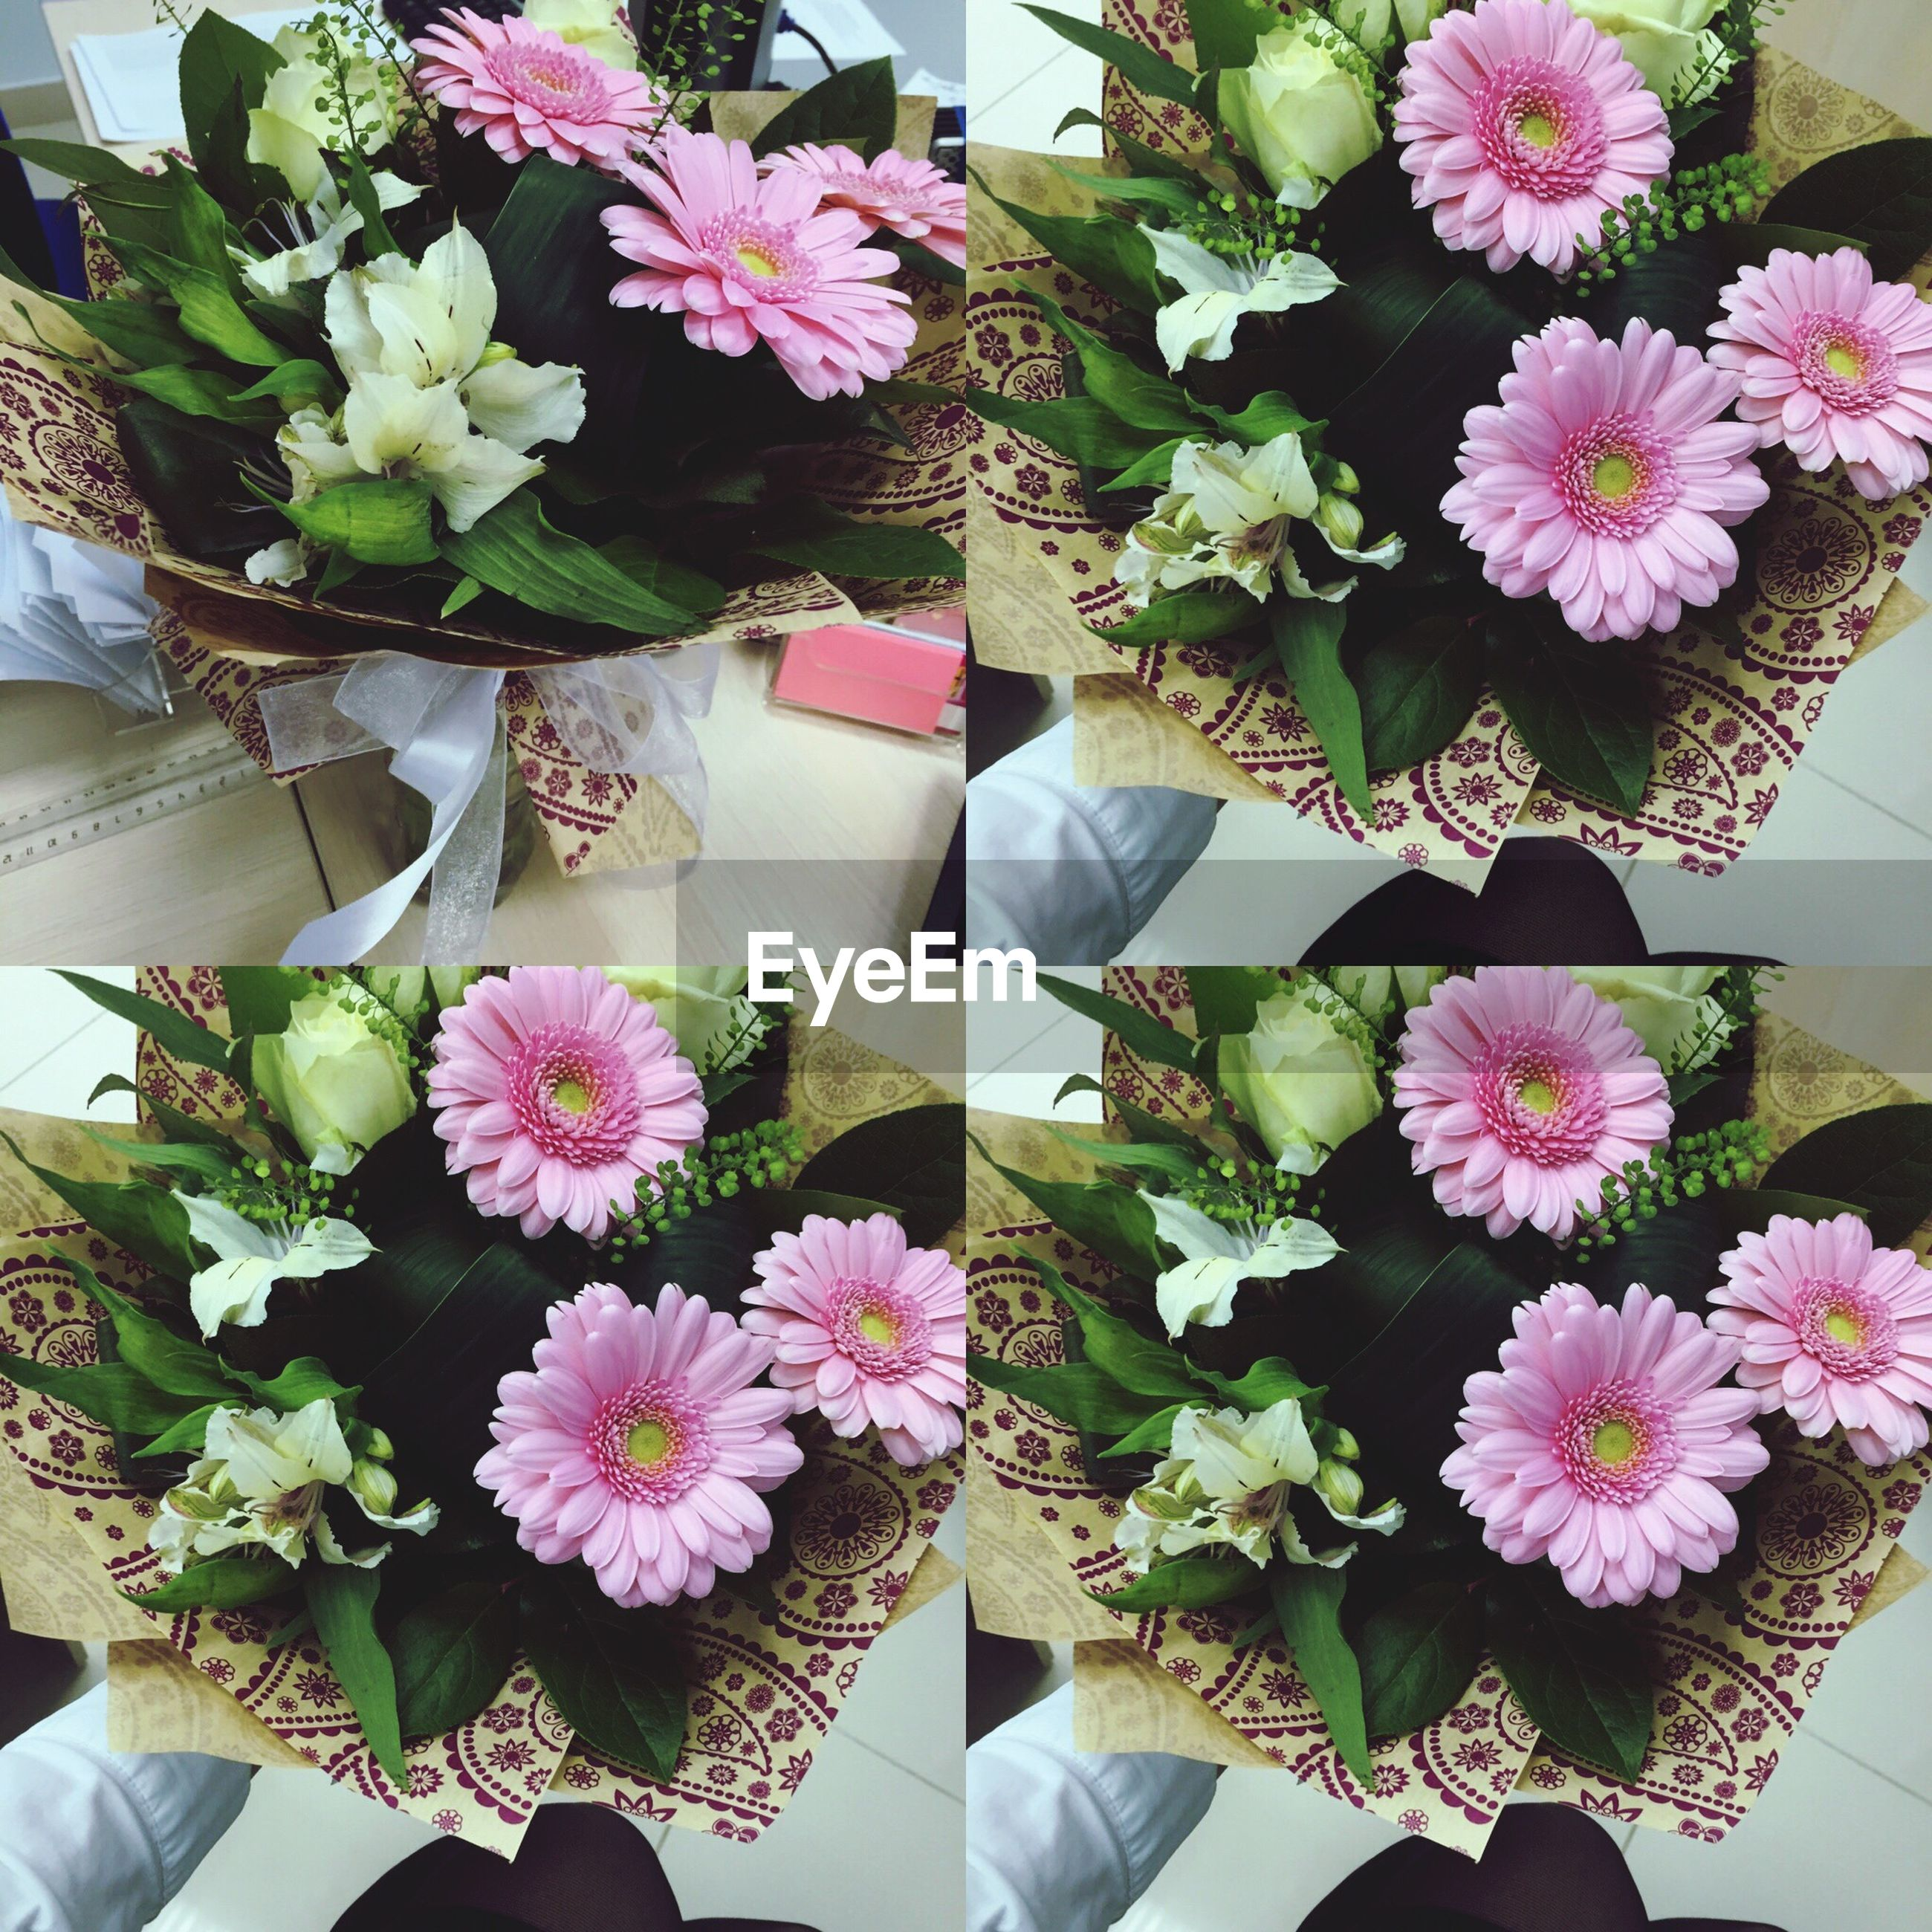 flower, indoors, freshness, vase, fragility, table, petal, potted plant, high angle view, growth, bunch of flowers, bouquet, flower arrangement, plant, variation, flower head, flower pot, leaf, beauty in nature, pink color